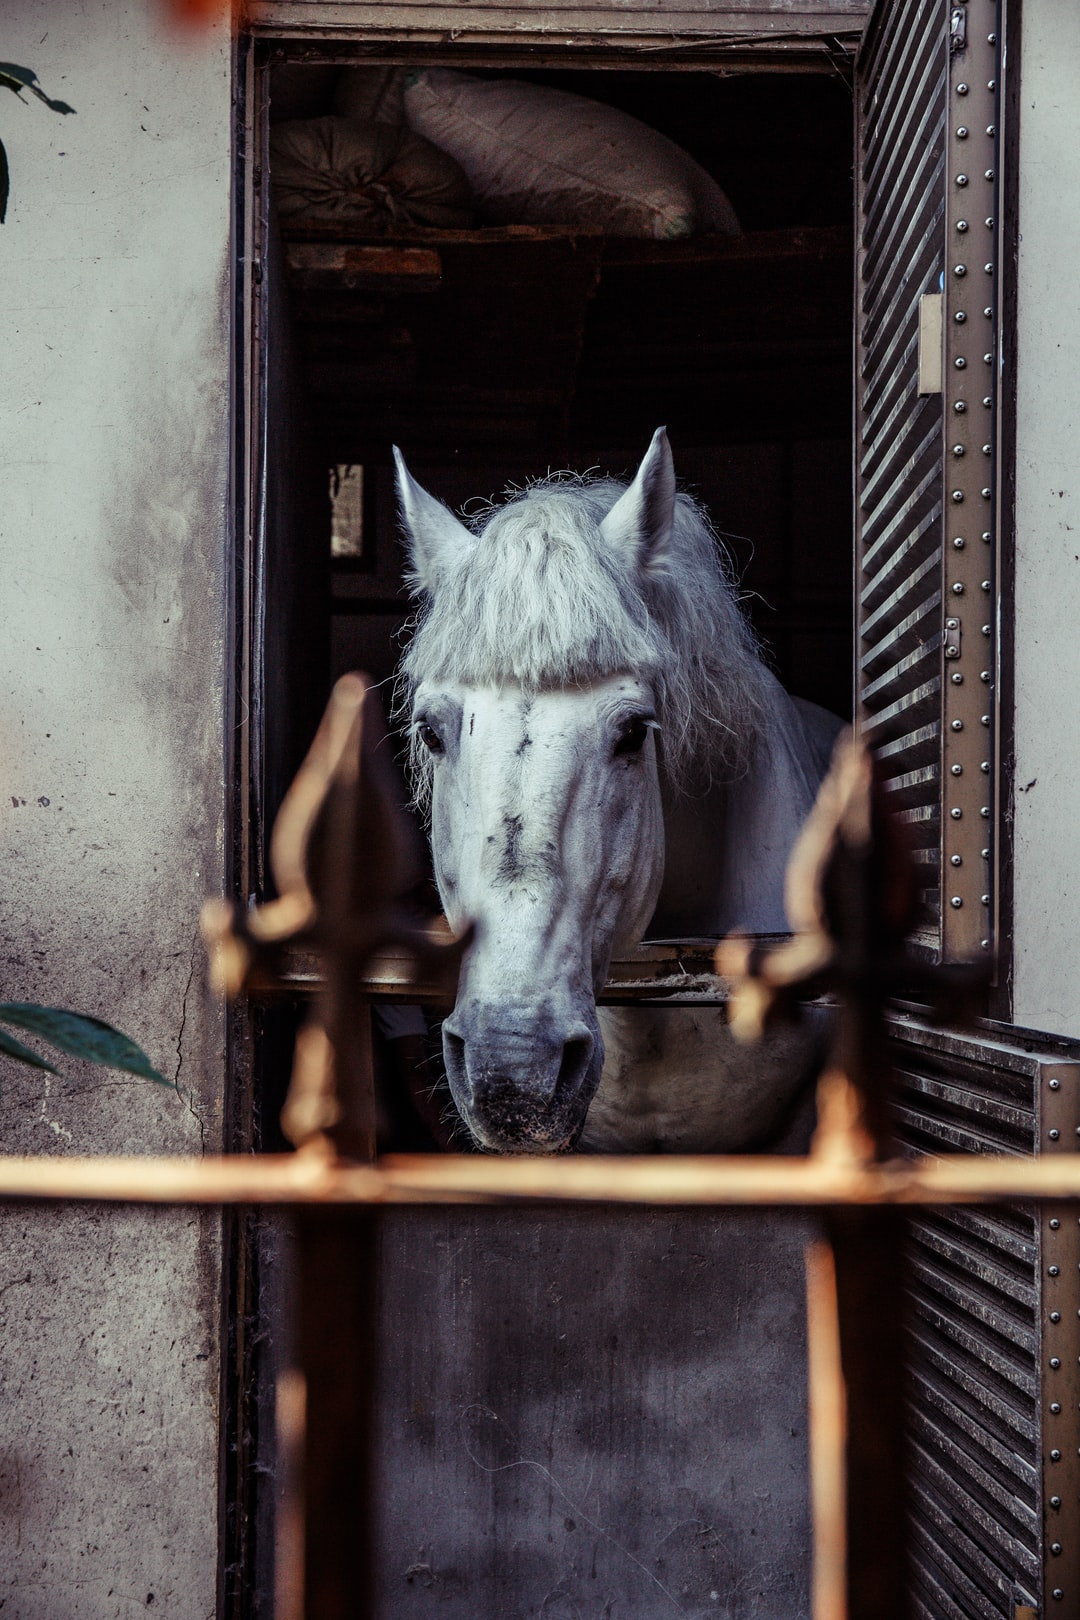 Horse in the cage